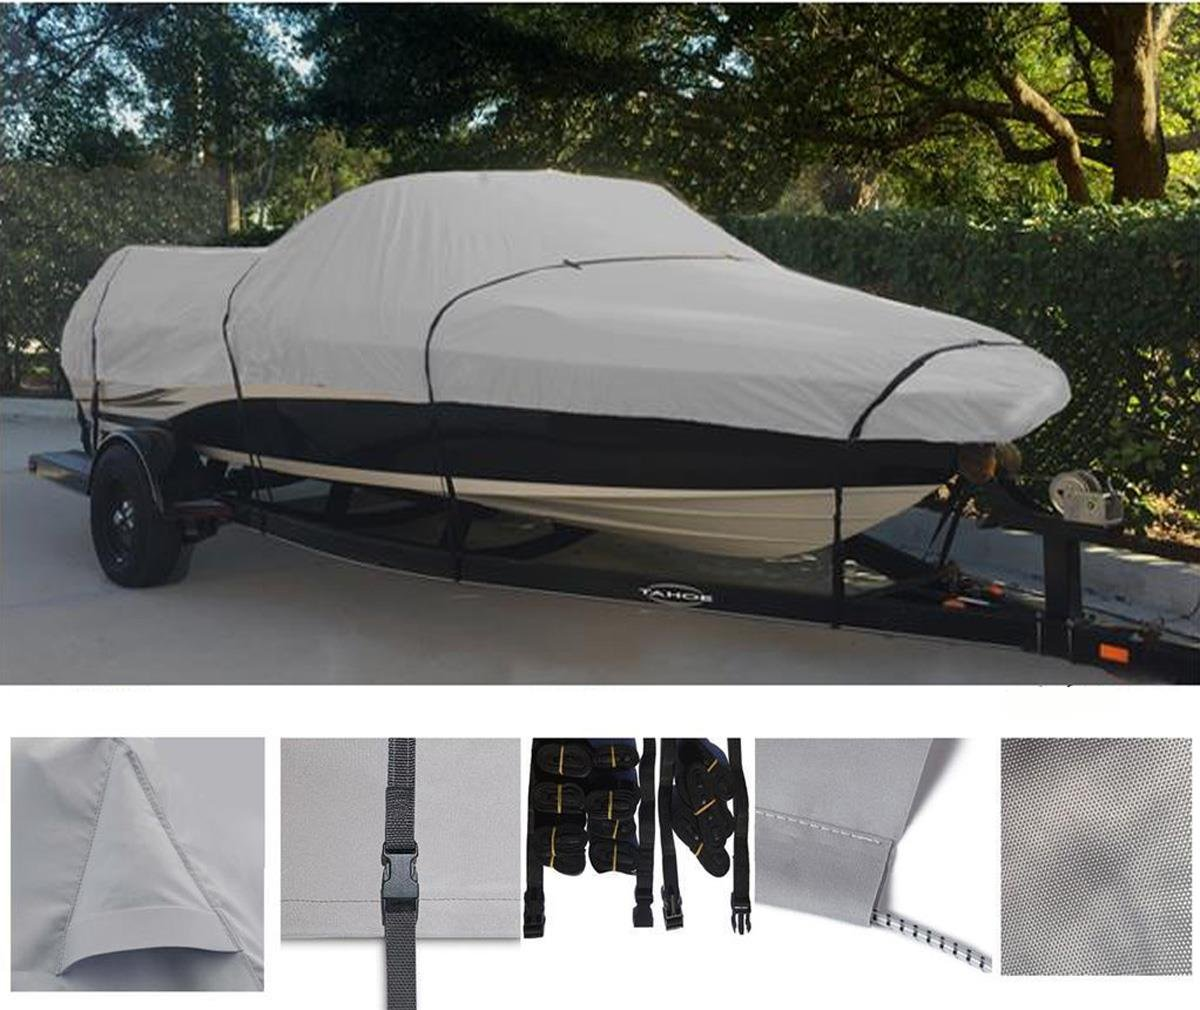 GREY, STORAGE, TRAVEL, MOORING BOAT COVER FOR REGAL VALANTI 202 SE I/O 1993 1994 1995 Great Quality by SBU